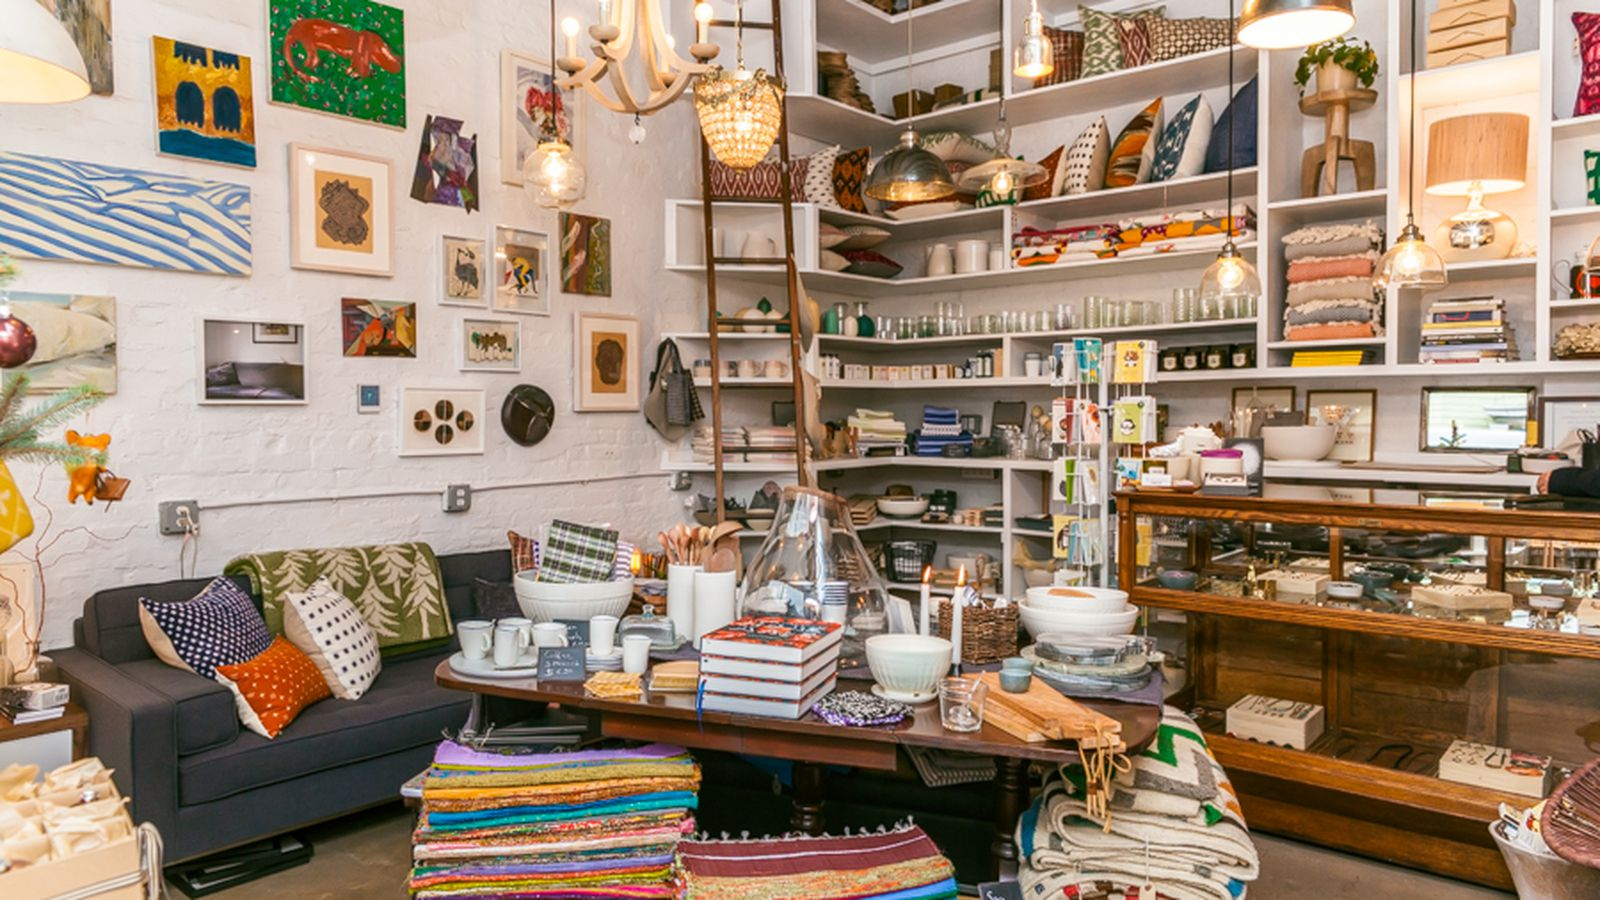 Deck the dorm 14 places for affordable home goods in nyc for Affordable home goods